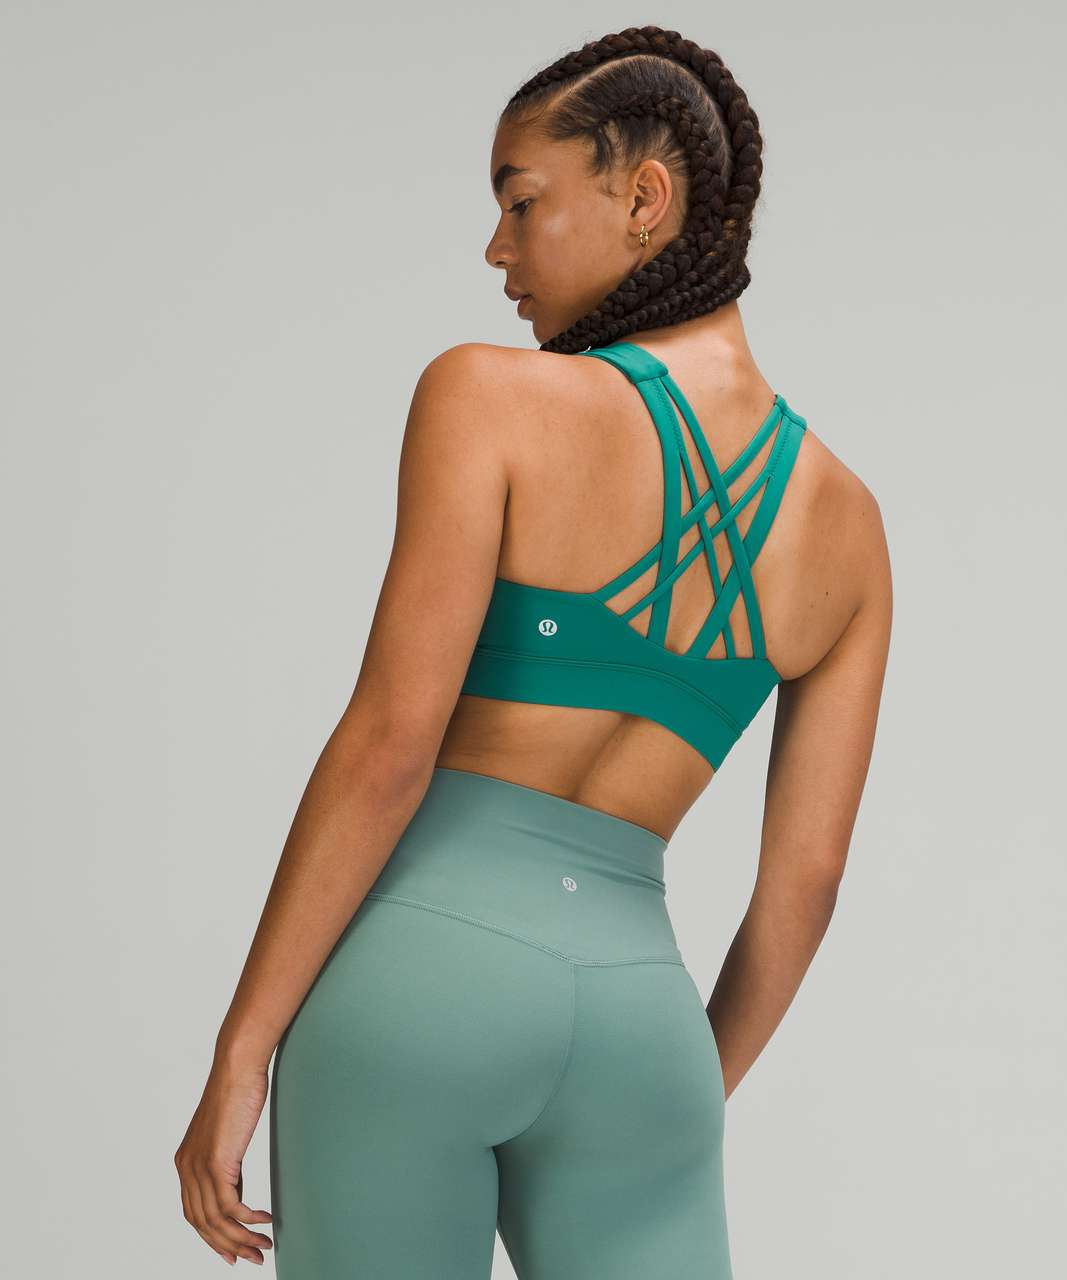 Lululemon Free To Be Elevated Bra *Light Support, DD/E Cup - Teal Lagoon